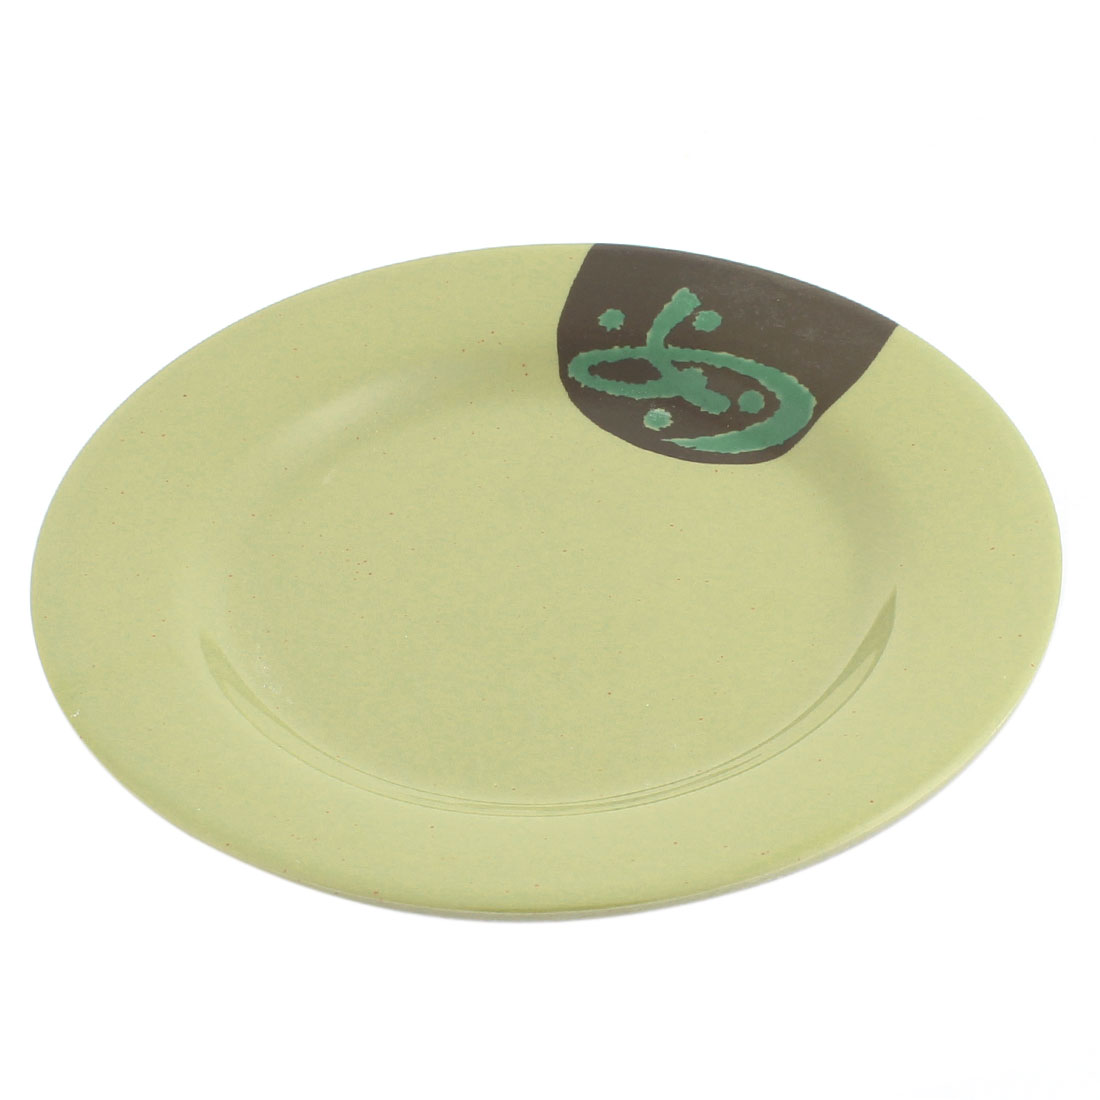 Kitchen Round Shape Tableware Plastic Dinner Plate 7 Inch Dia